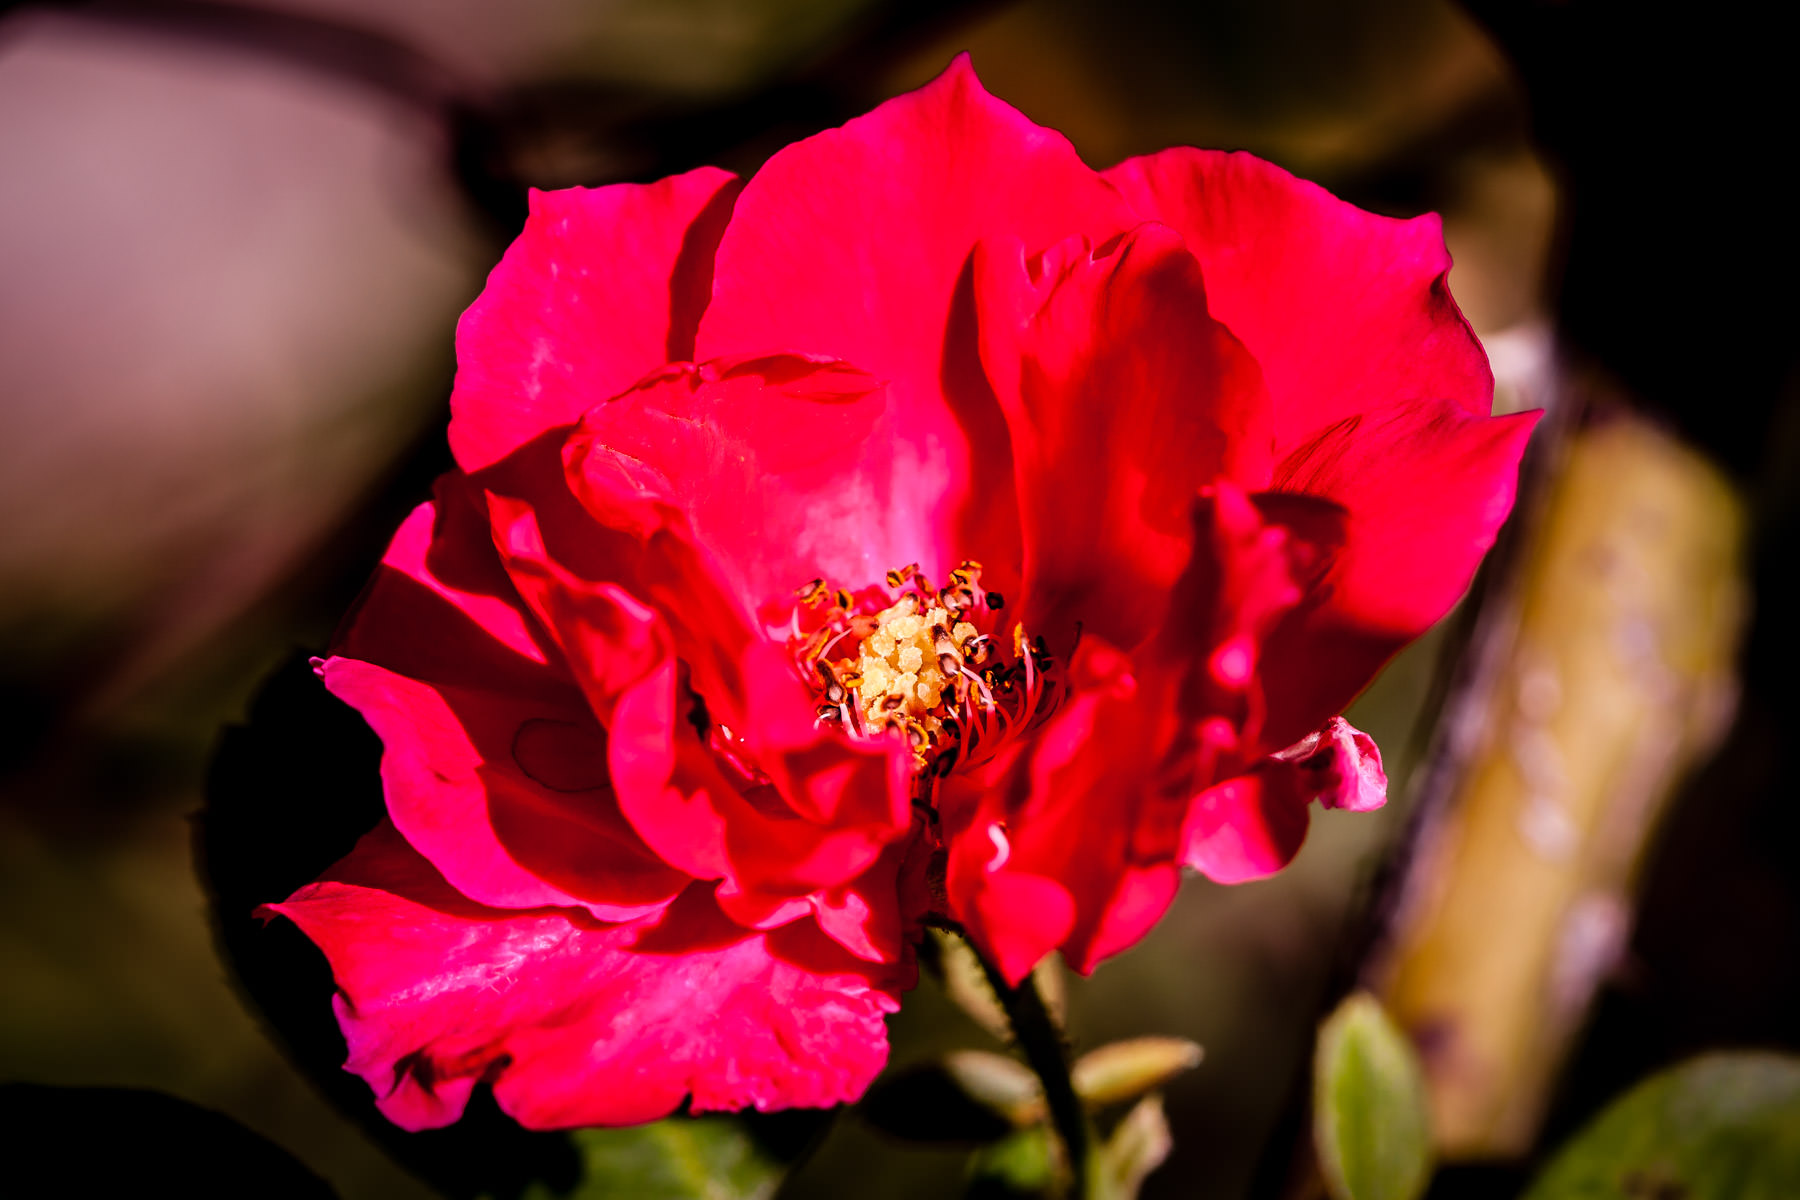 A red flower in Tyler, Texas.